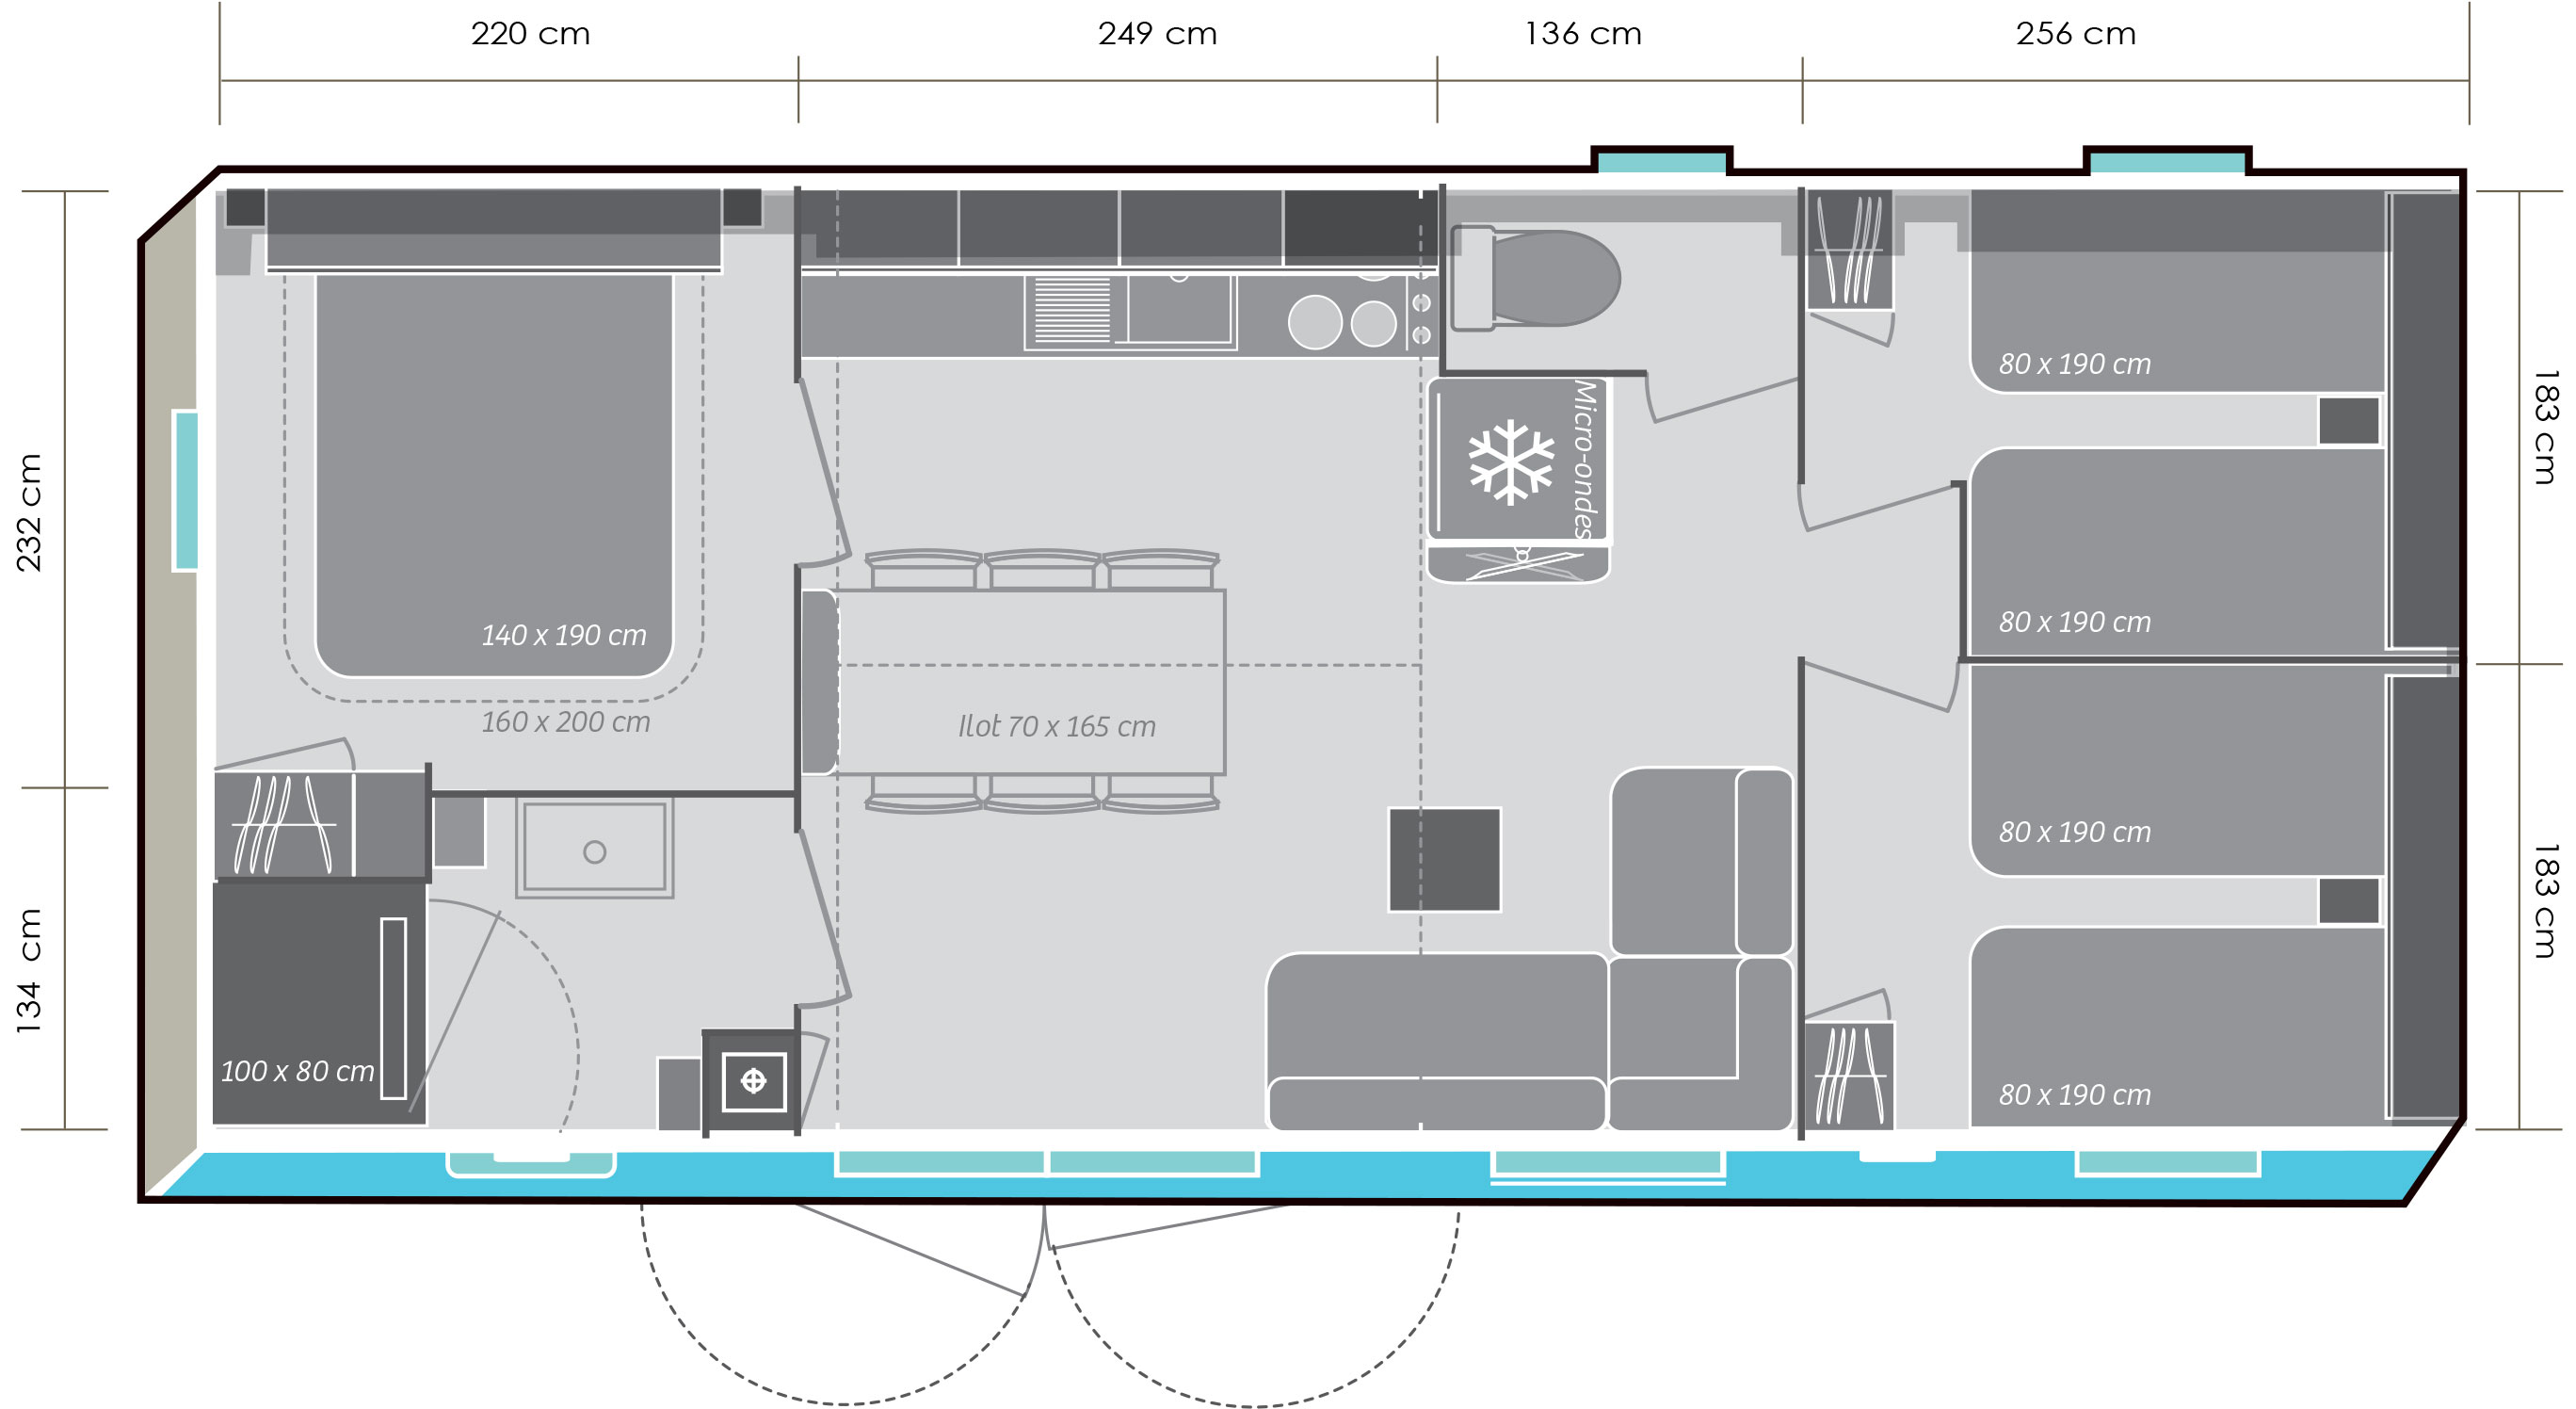 Mobil-home Mobil-home 884